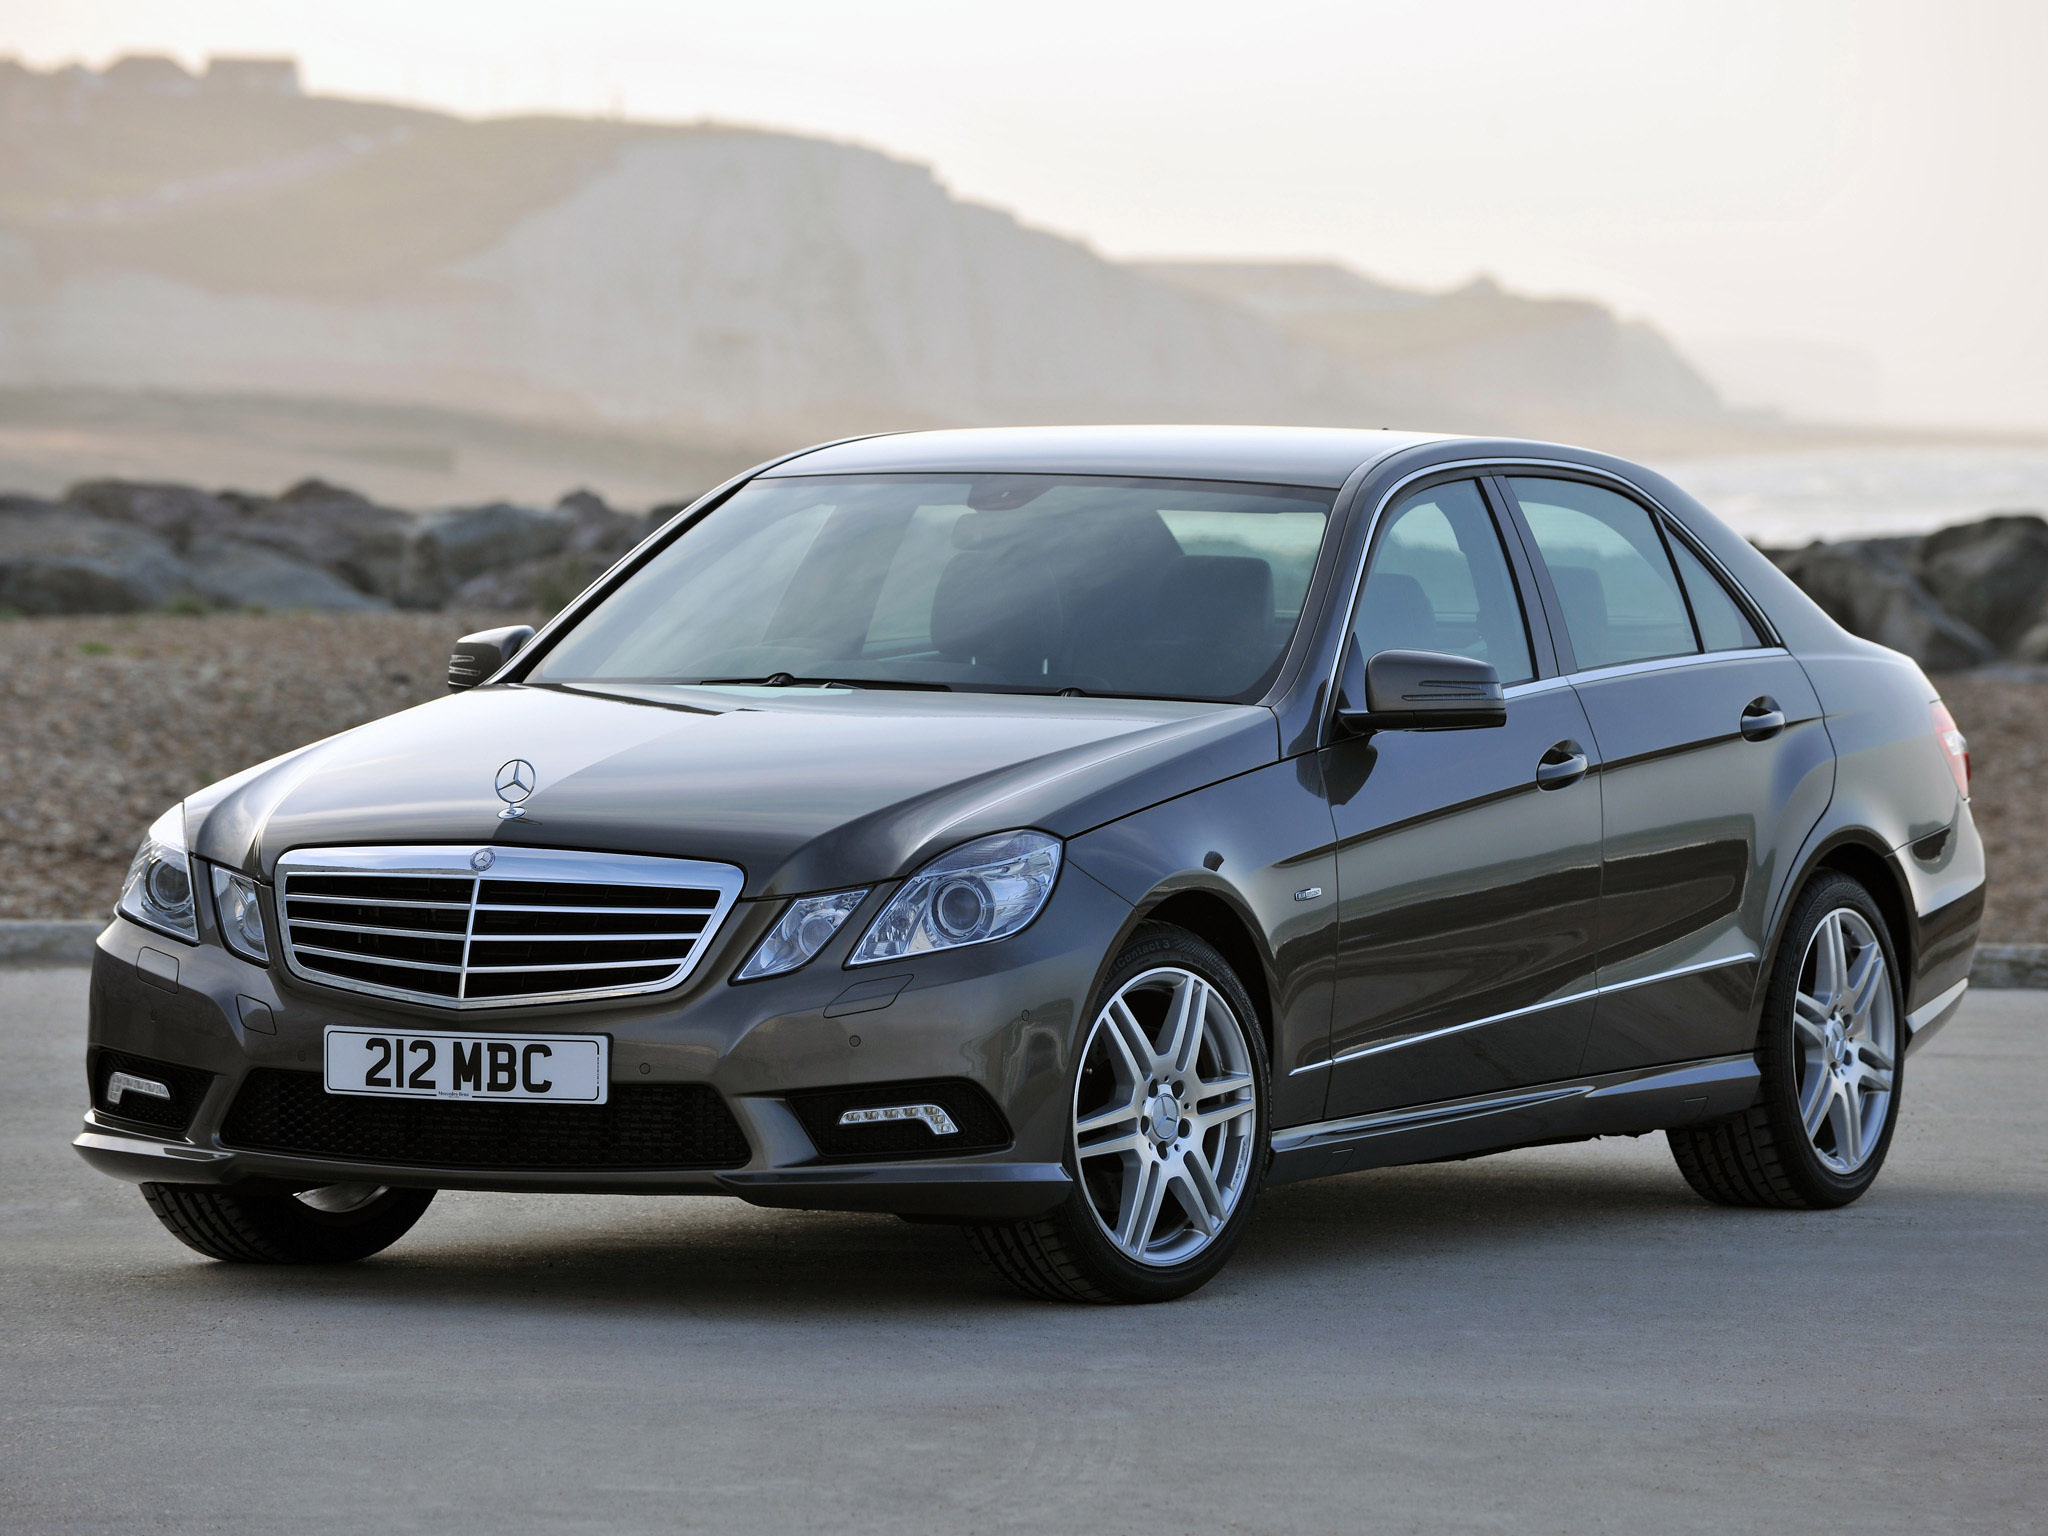 Mercedes-benz e220cdi photo - 2